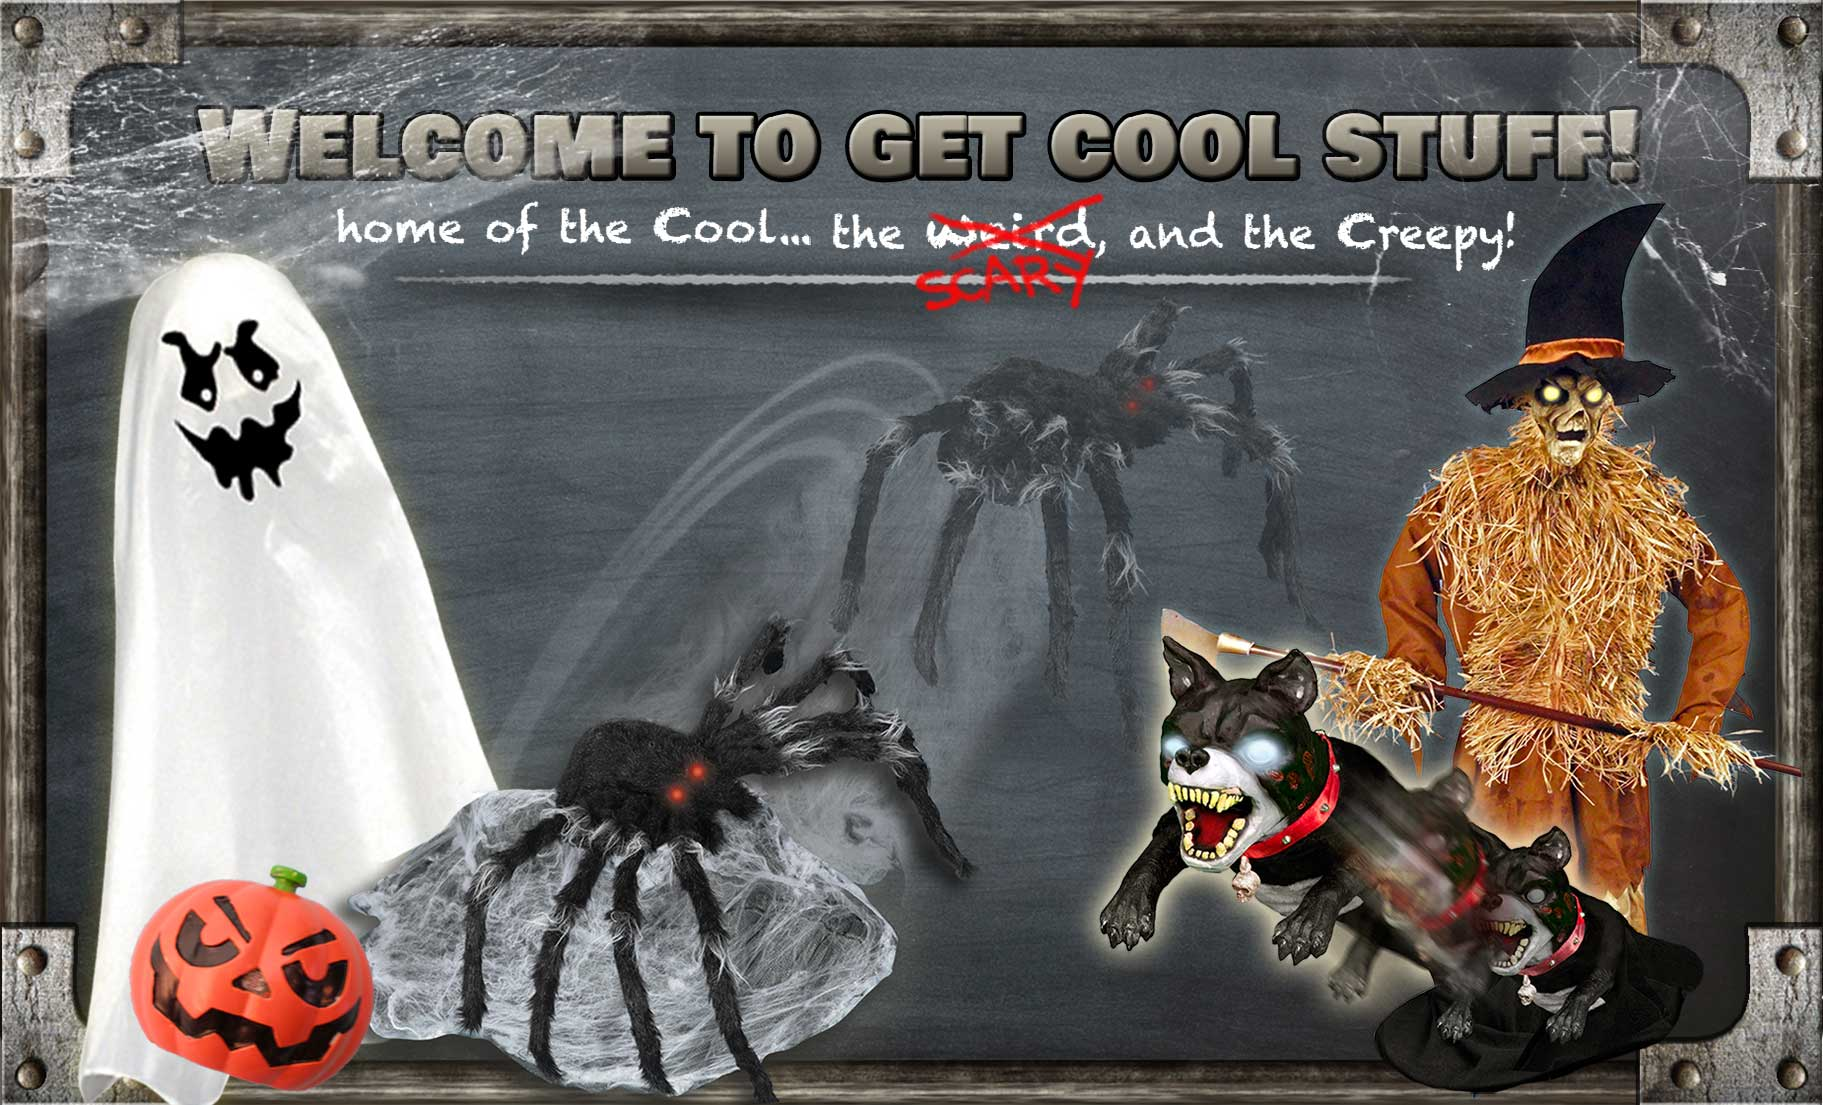 Get Cool Stuff - Home of the cool, the weird, and the creepy!